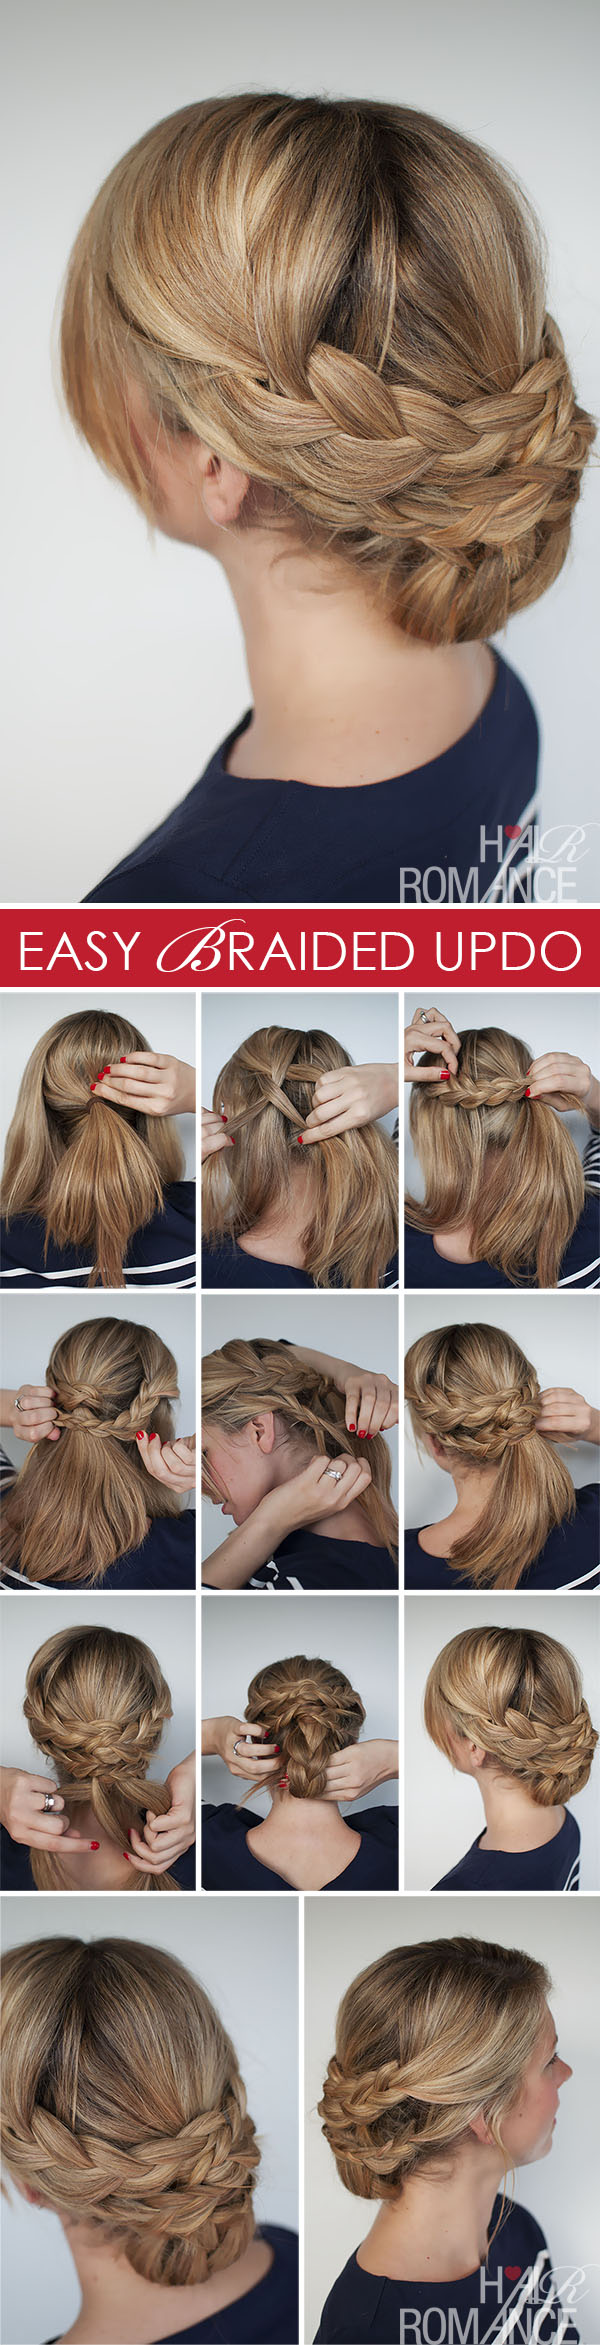 Hairstyle-how-to-Hair-Romance-easy-braided-upstyle-tutorial